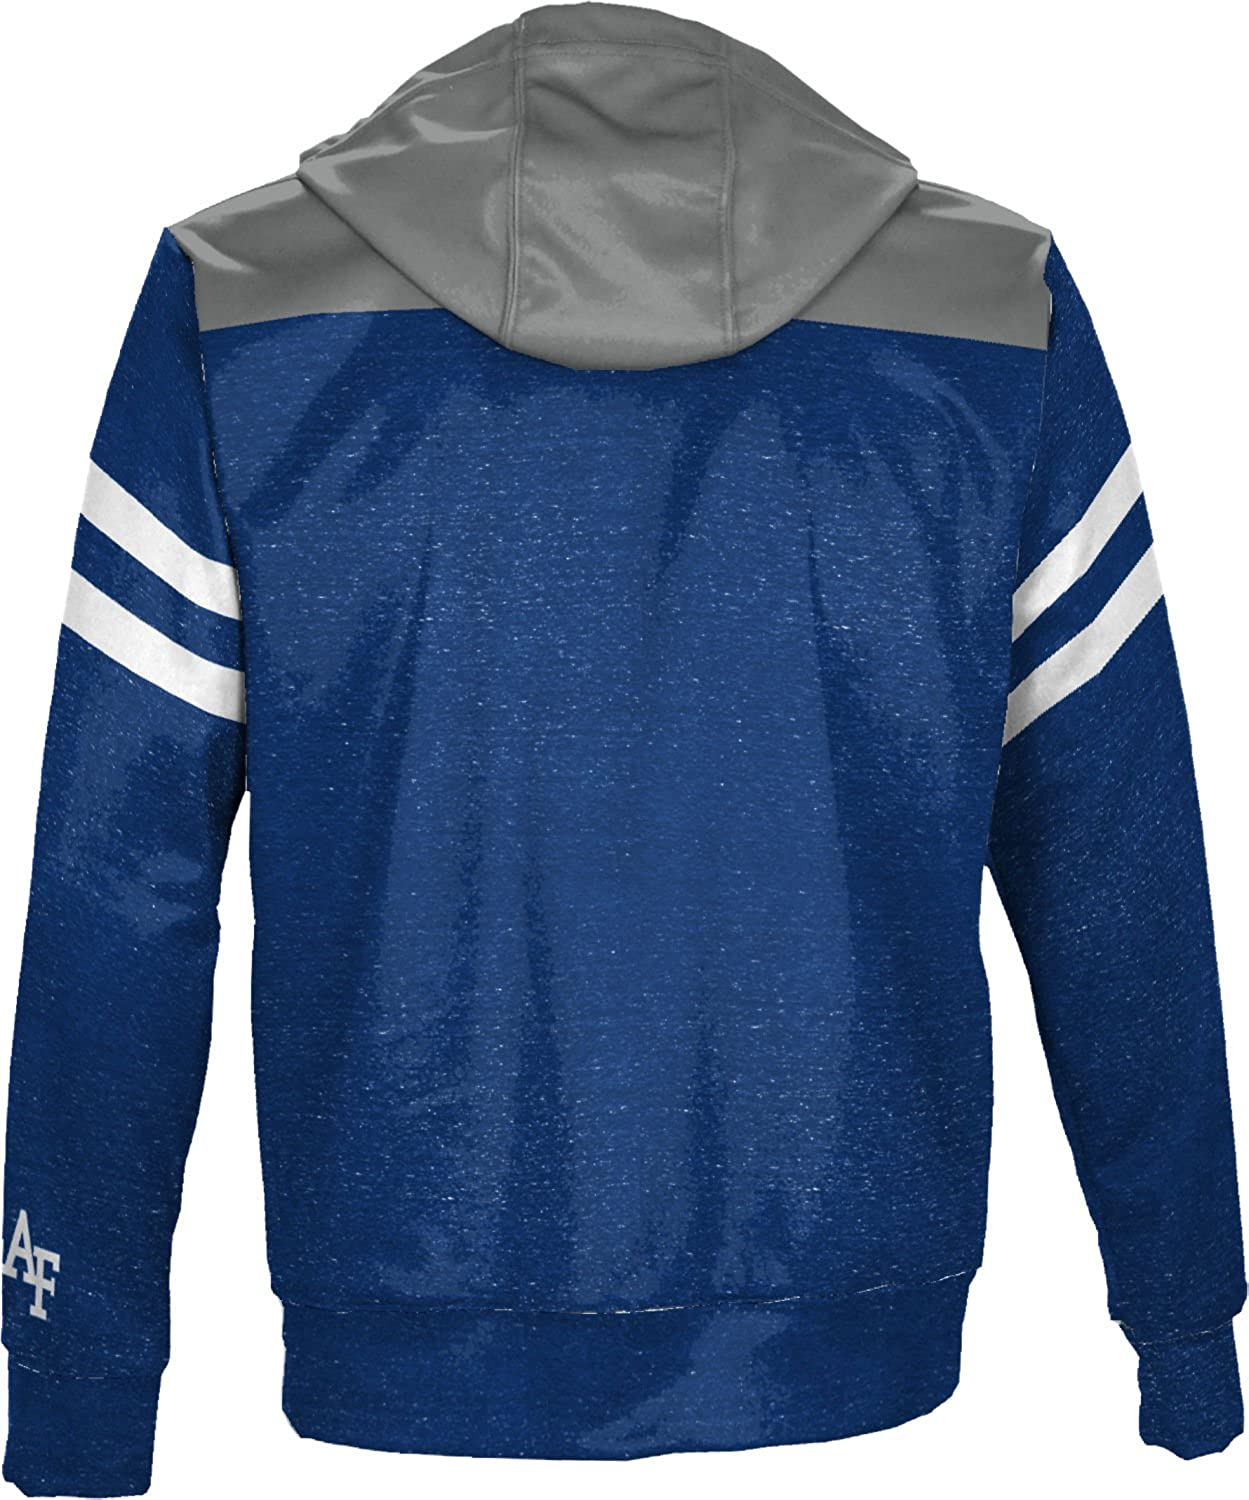 Game Time ProSphere U.S Air Force Academy Boys Pullover Hoodie